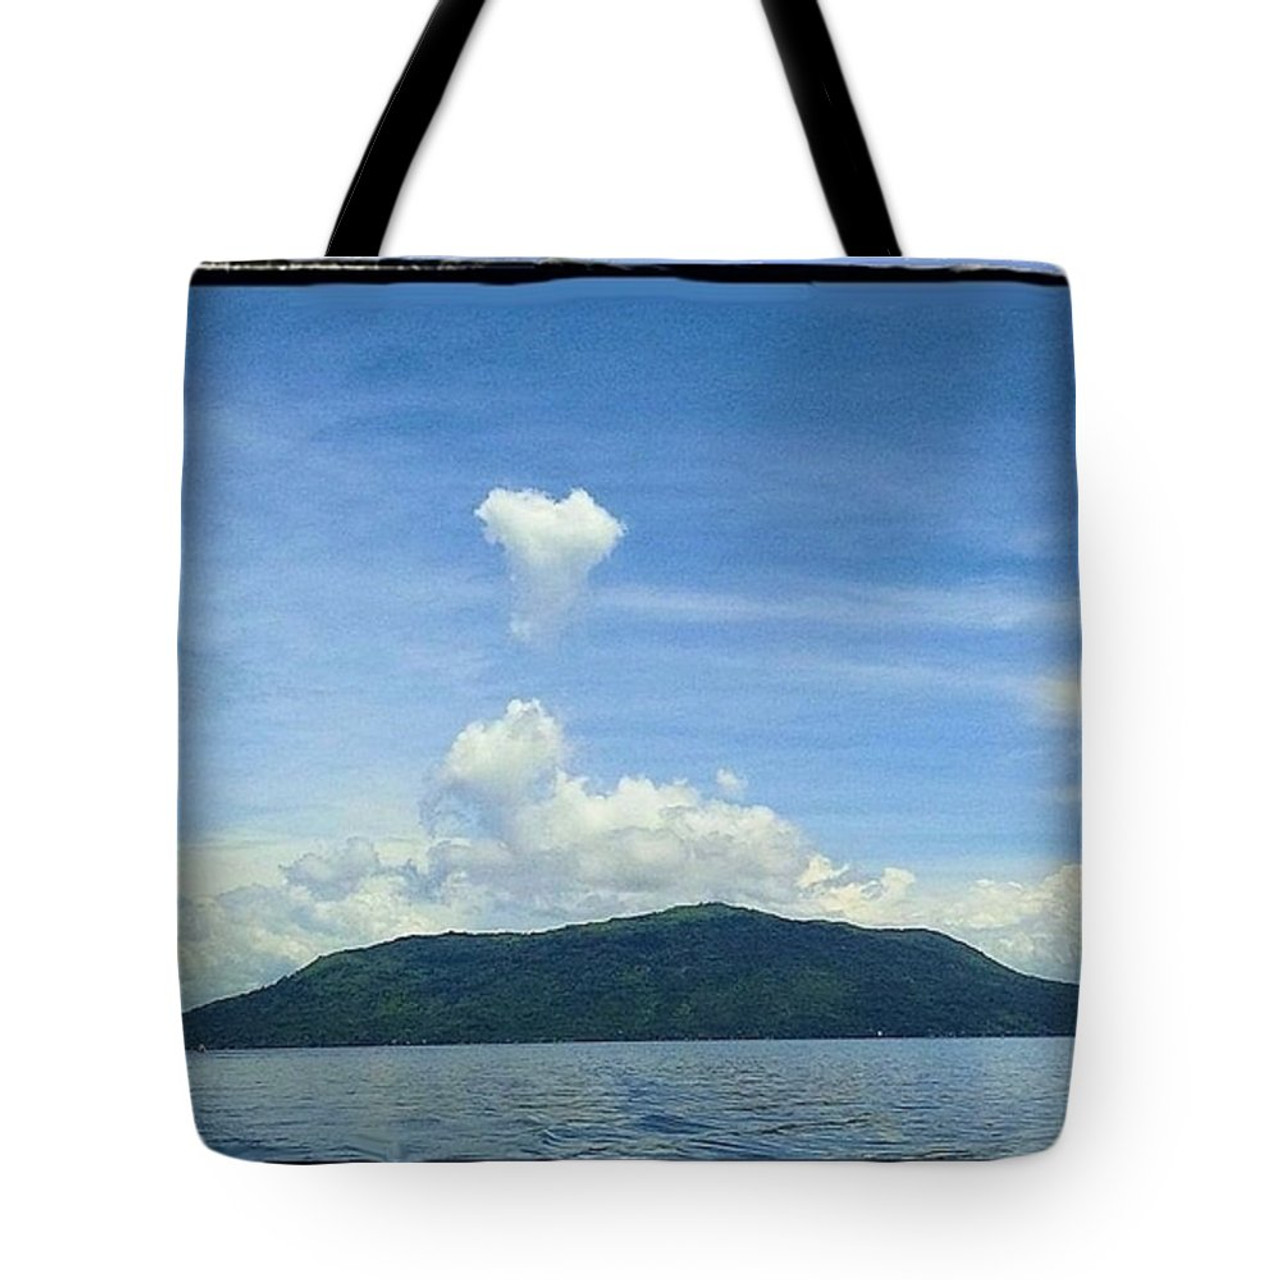 Tote bag;  Purchase here or visit the interactive site yourself: http://fineartamerica.com/profiles/jane-a-gordon.html